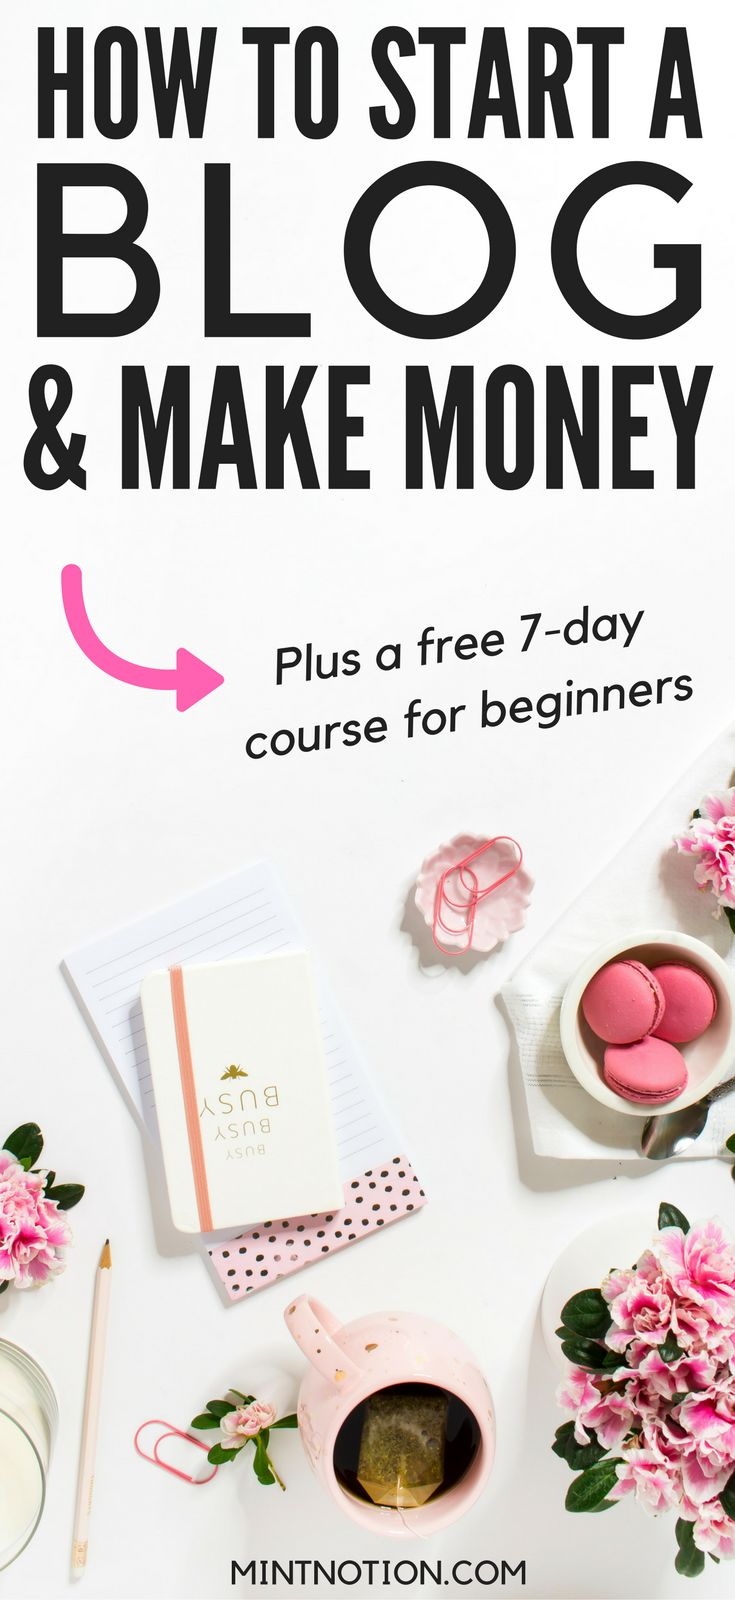 how to start a blog and make money pdf